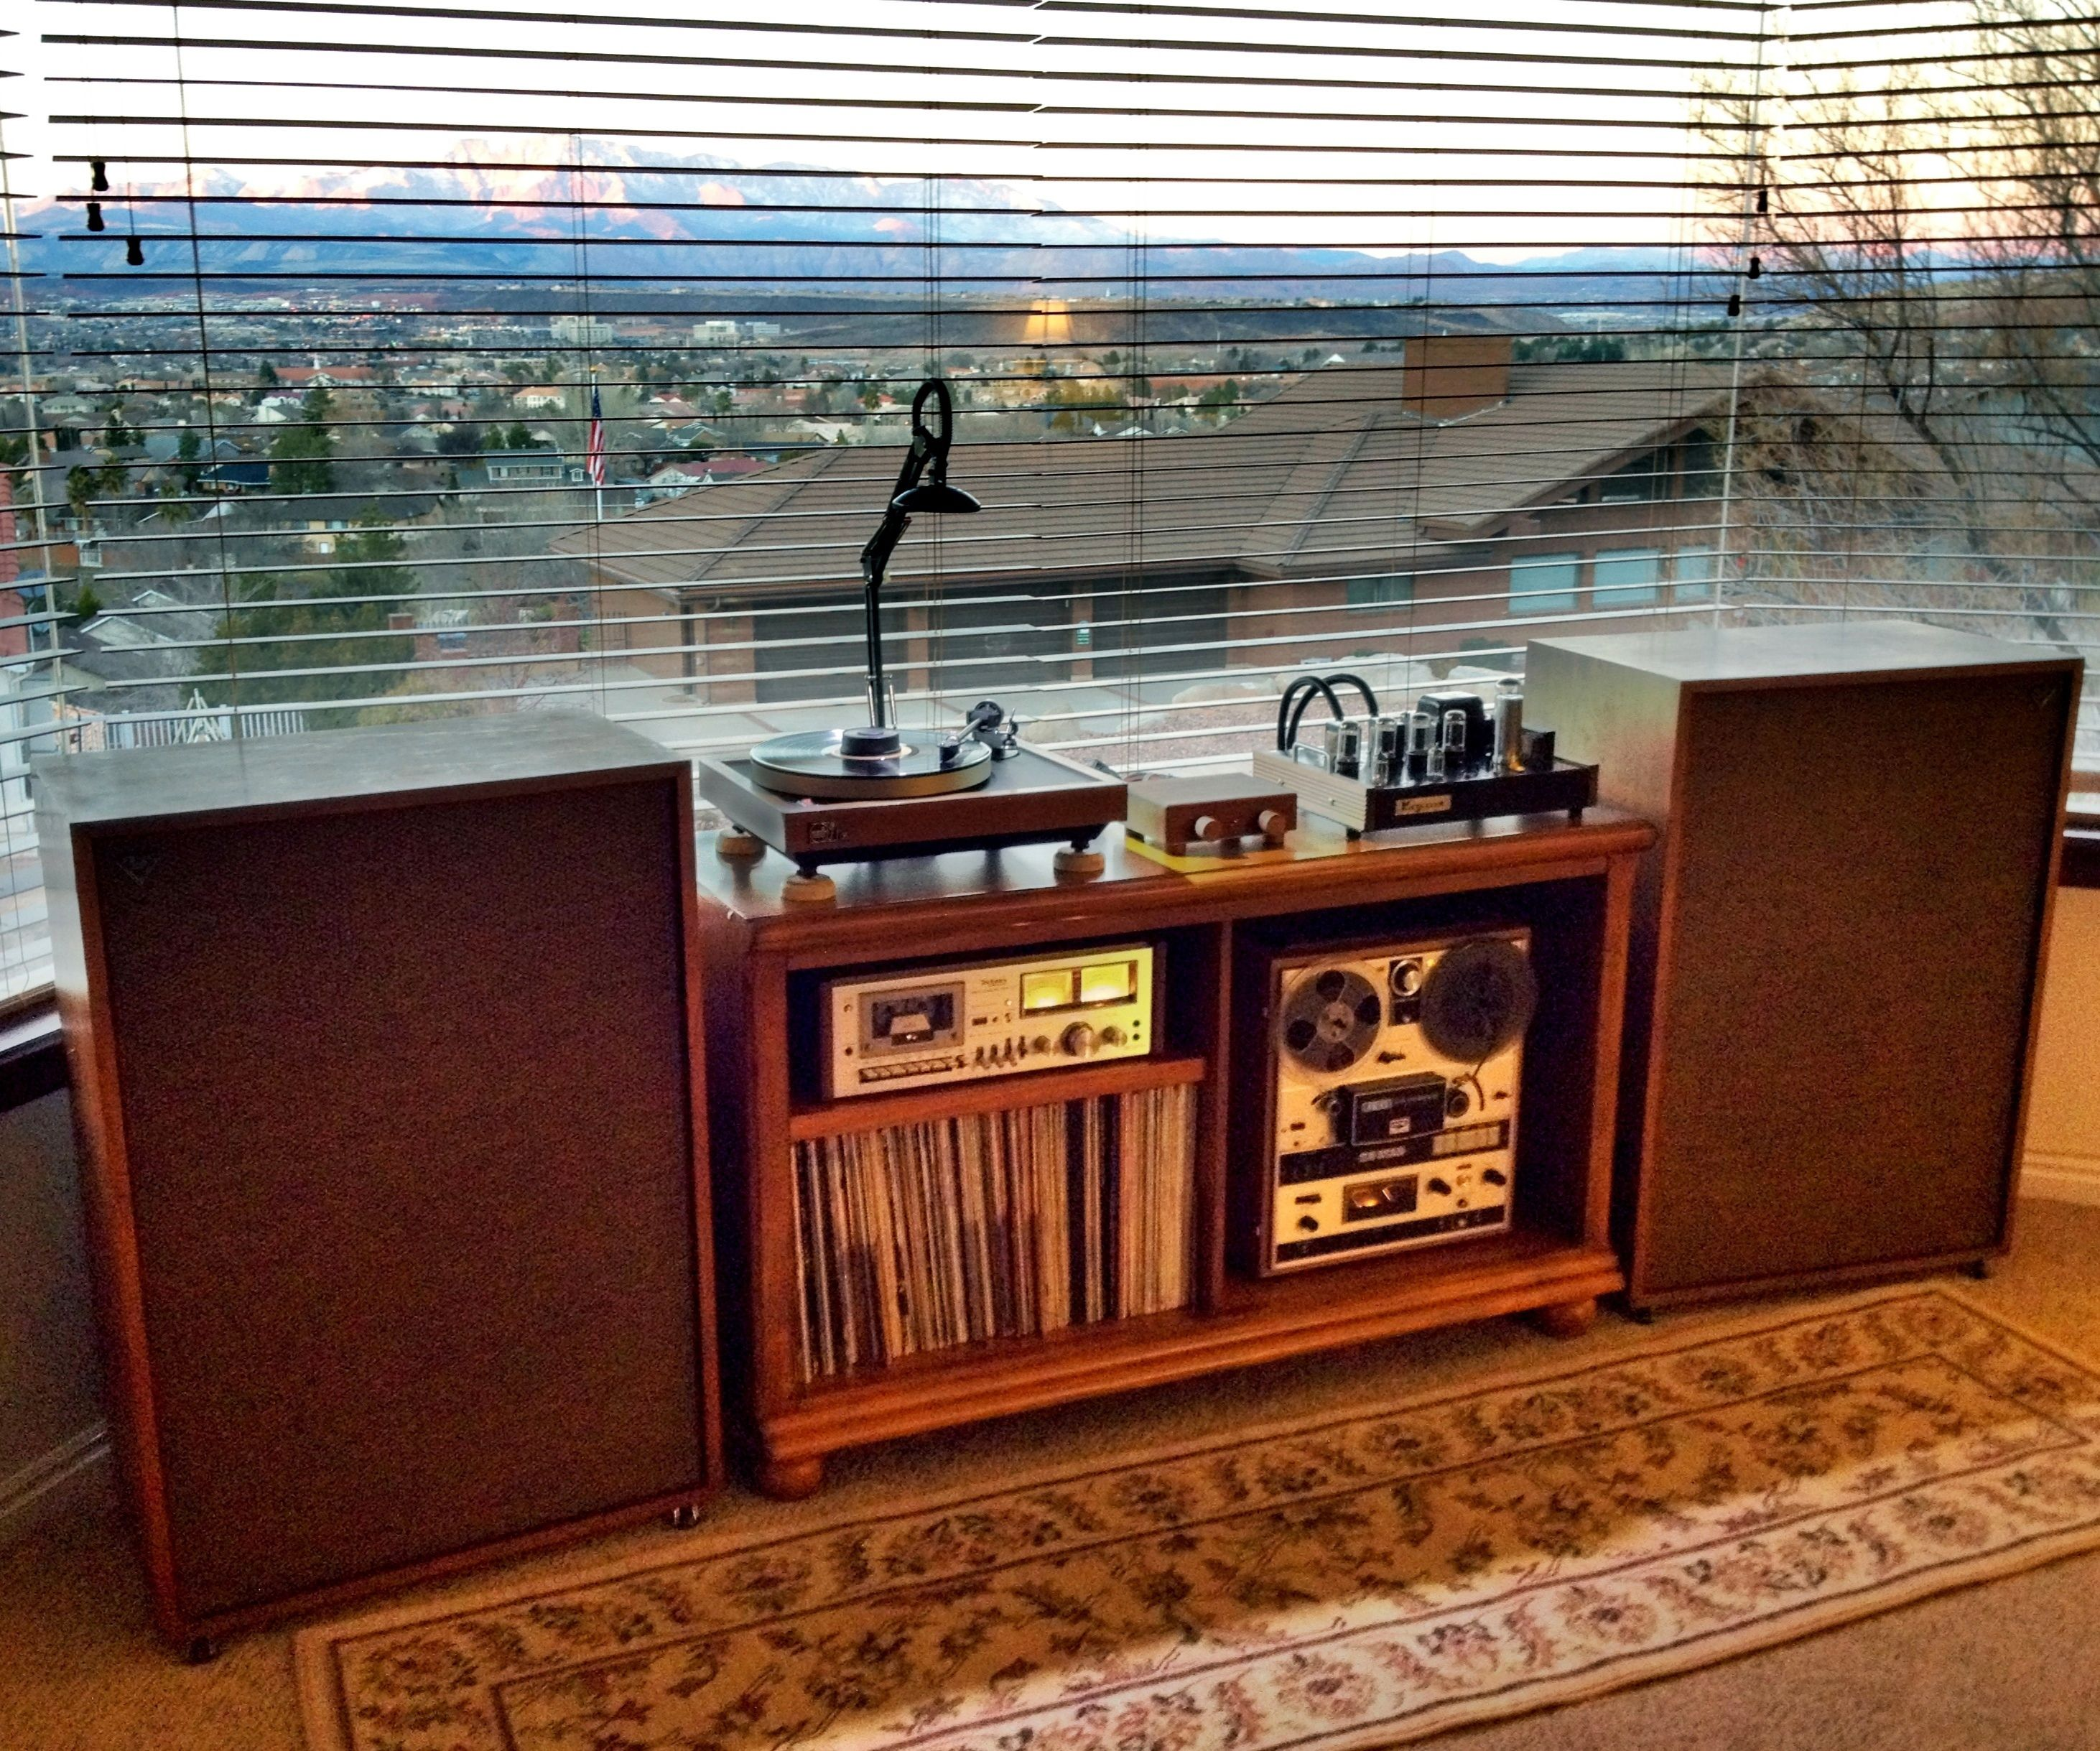 Pics of your listening space - Page 737 - AudioKarma org